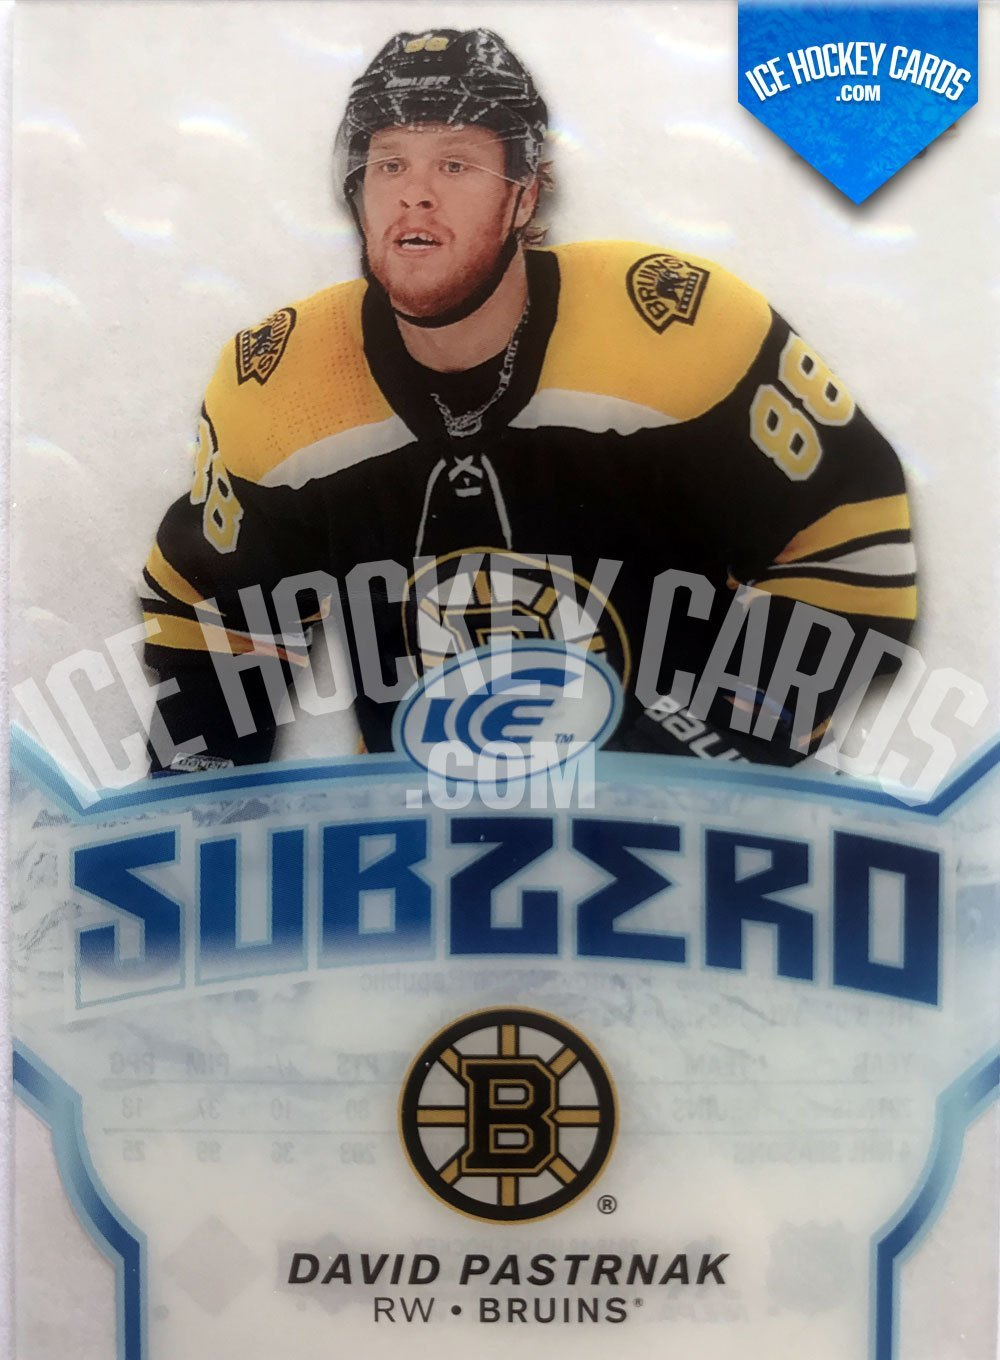 Upper Deck - ICE 18-19 - David Pastrnak Subzero Card